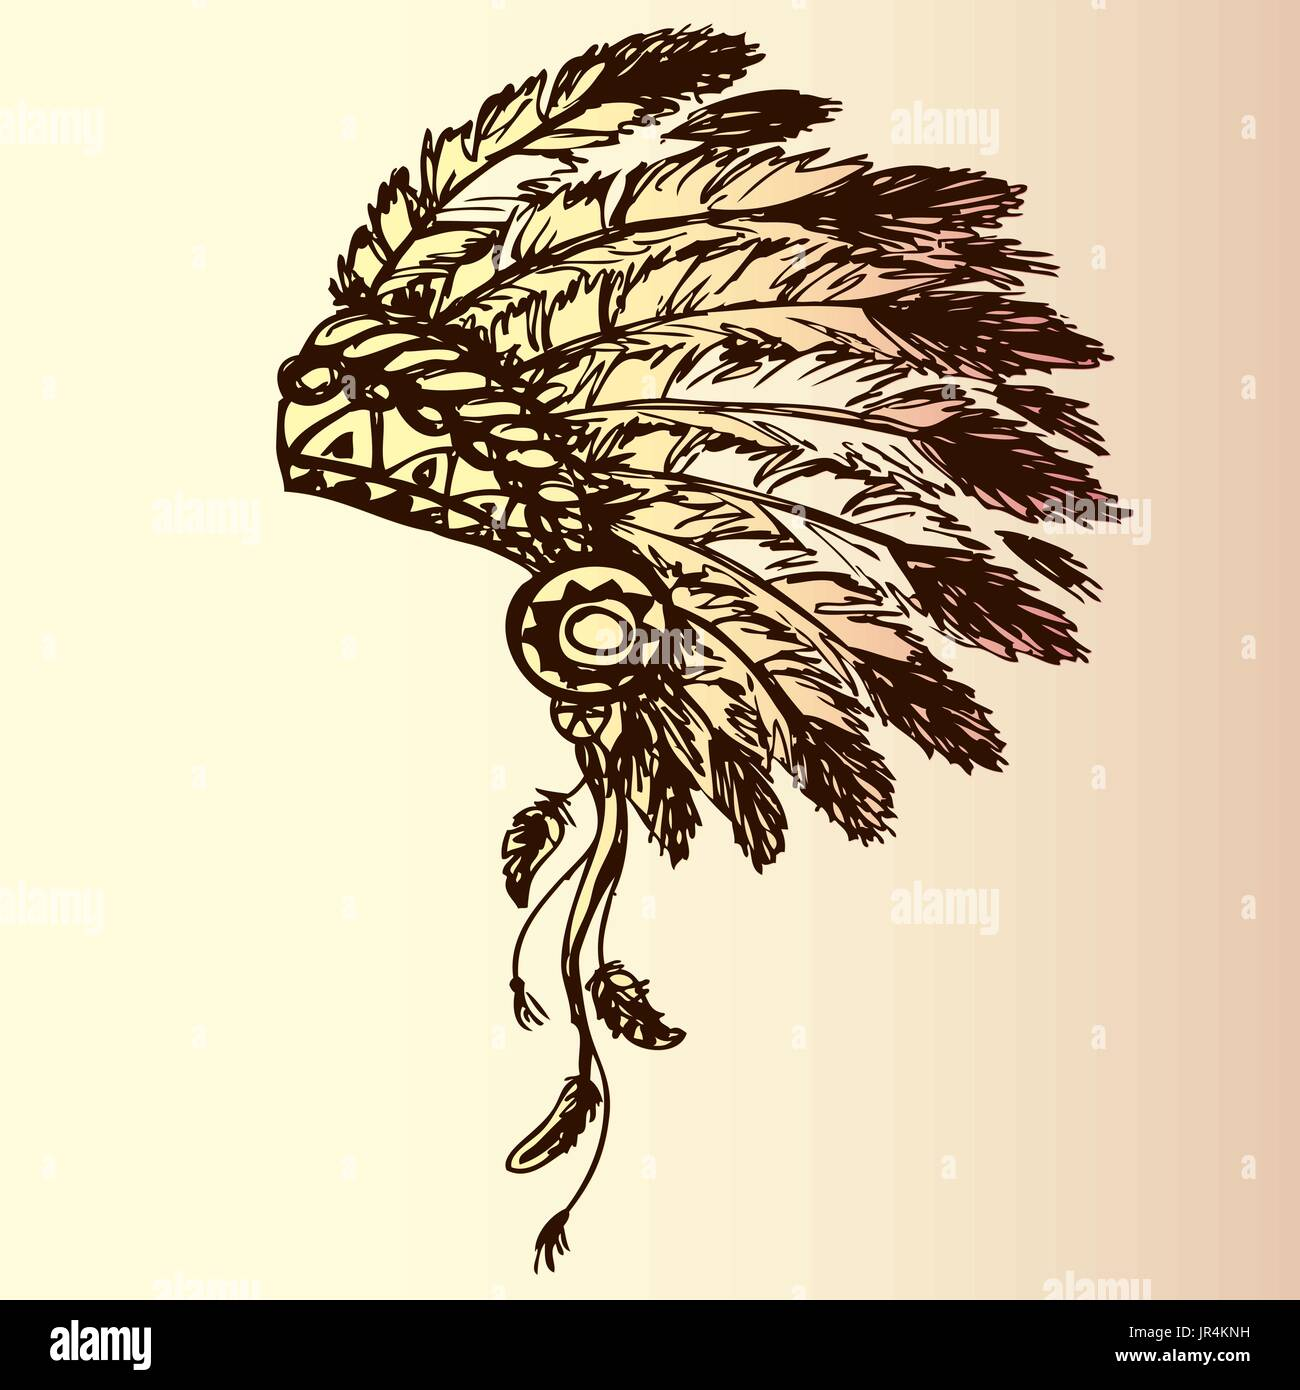 native american indian chief headdress (indian chief mascot, indian tribal headdress, indian headdress), hand drawing, vector - Stock Image